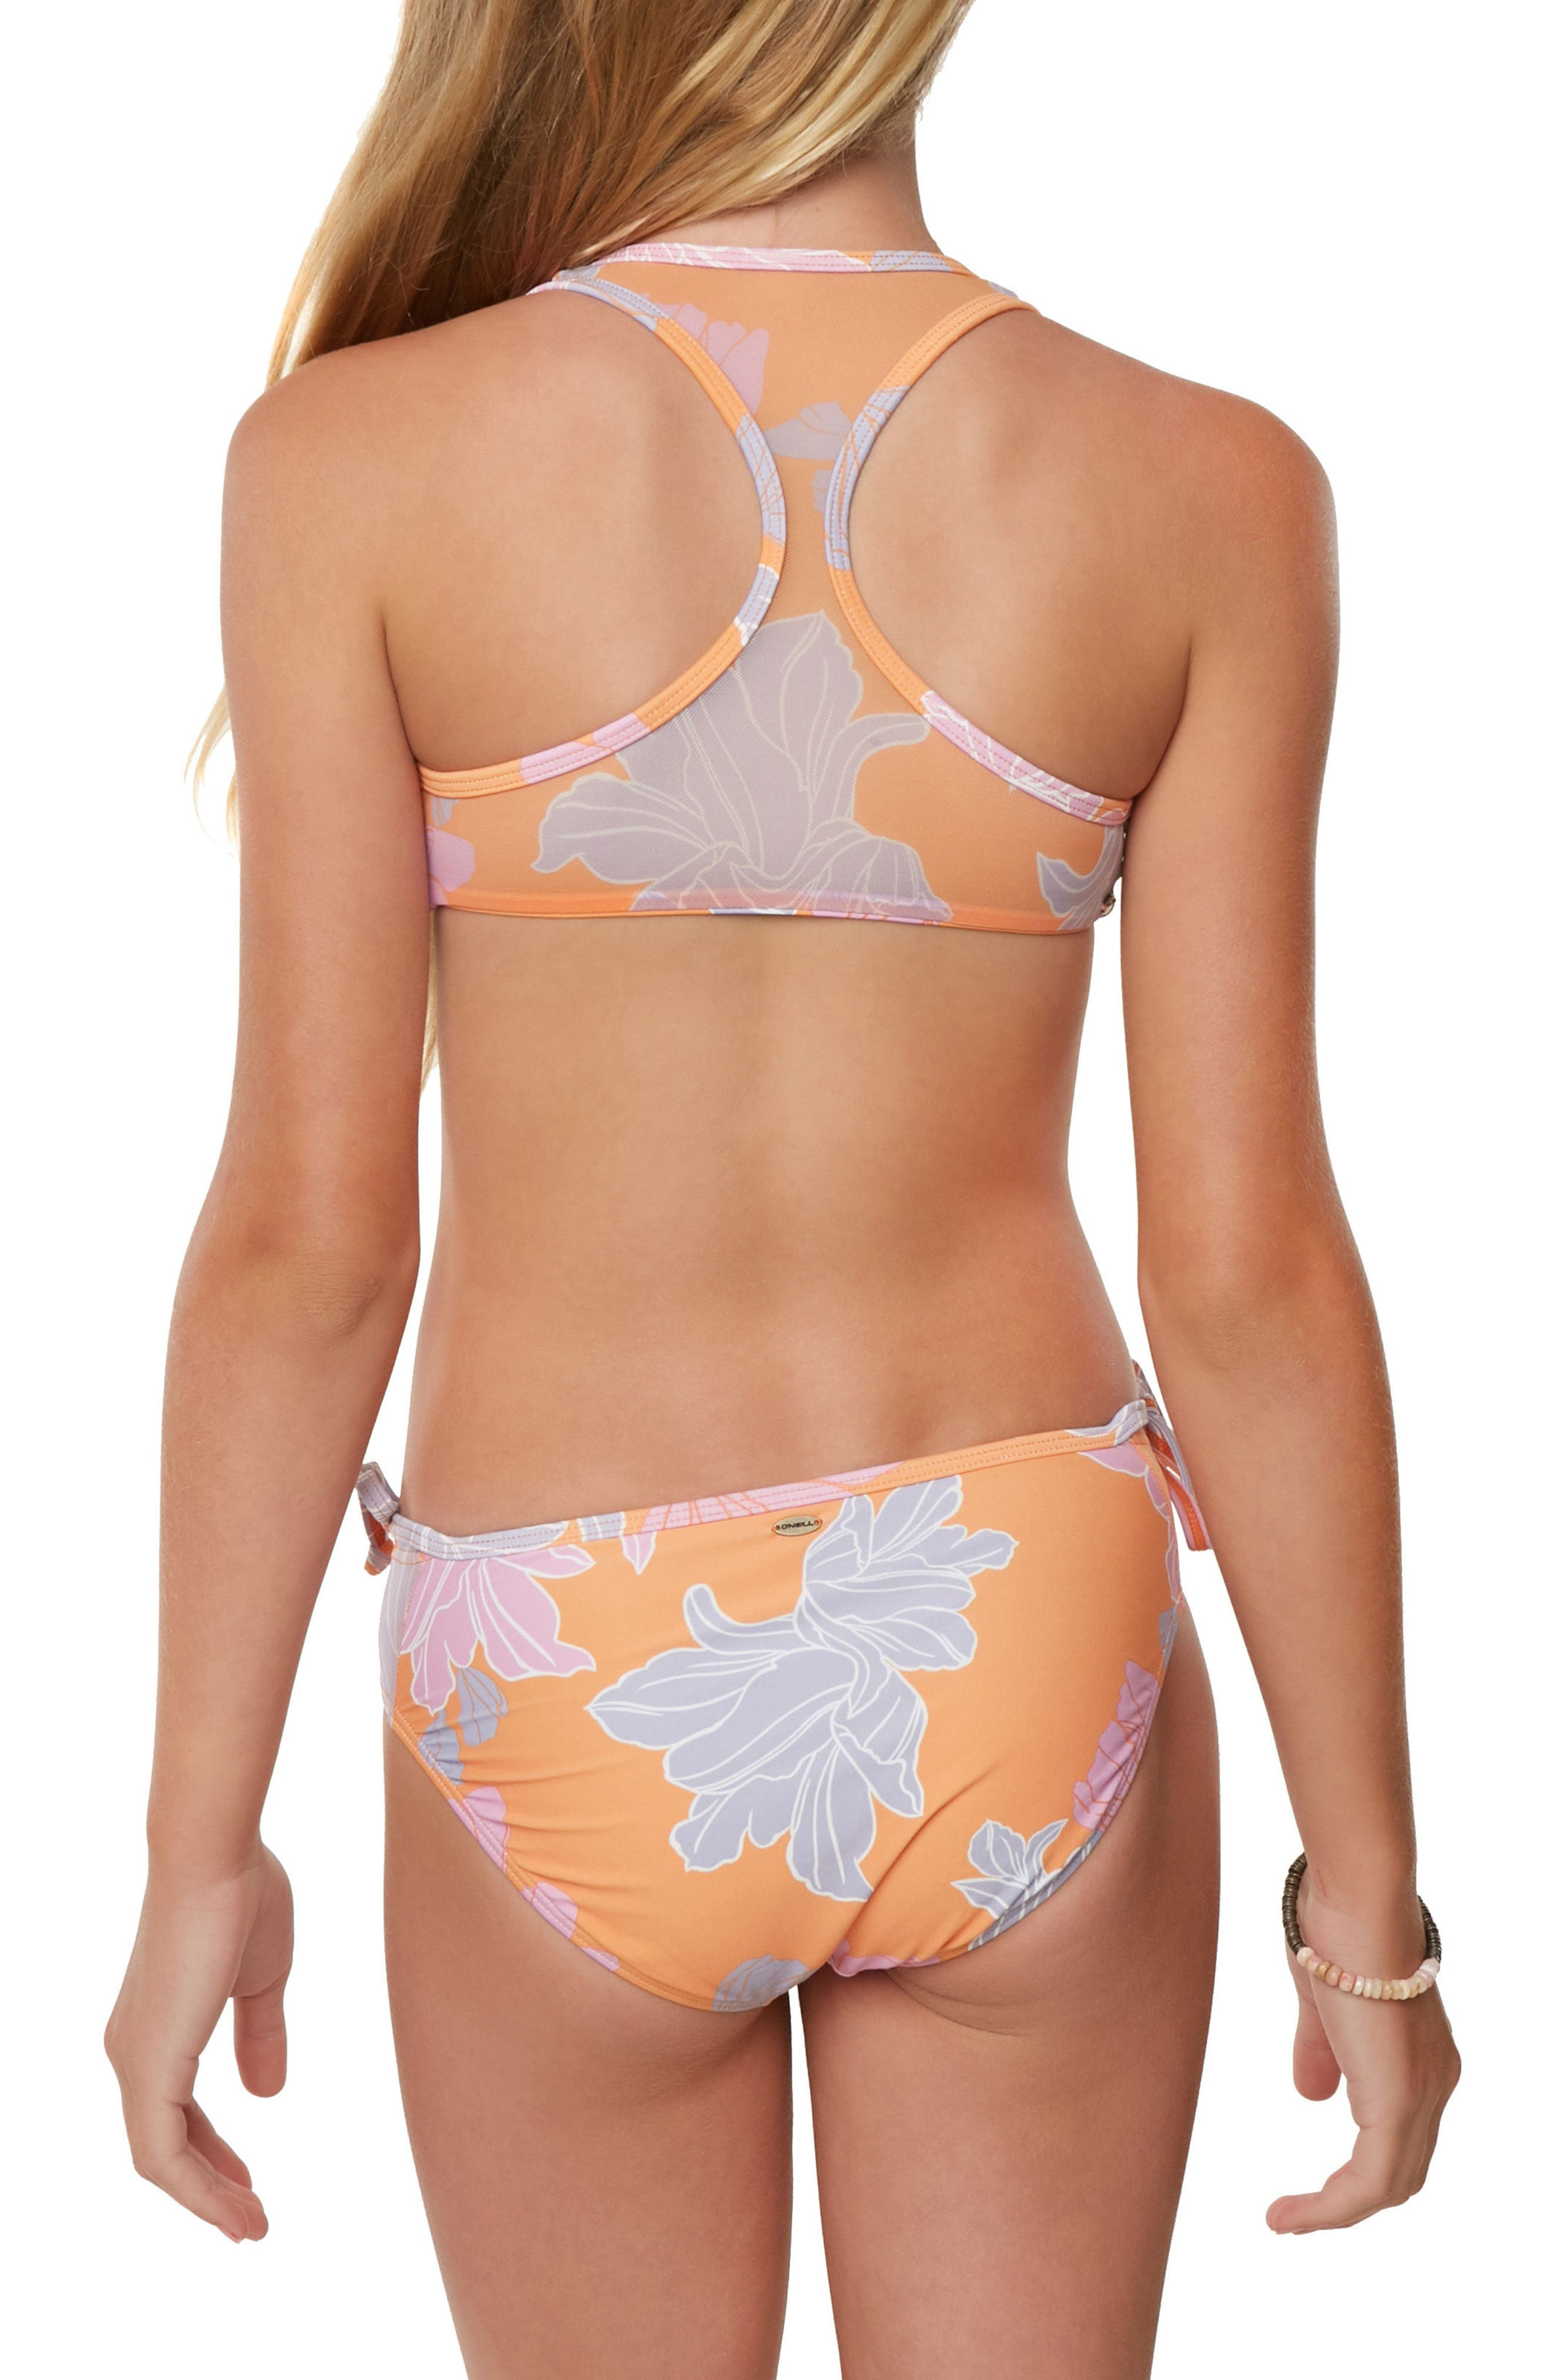 Zilla Floral Two-Piece Swimsuit,                             Alternate thumbnail 3, color,                             804